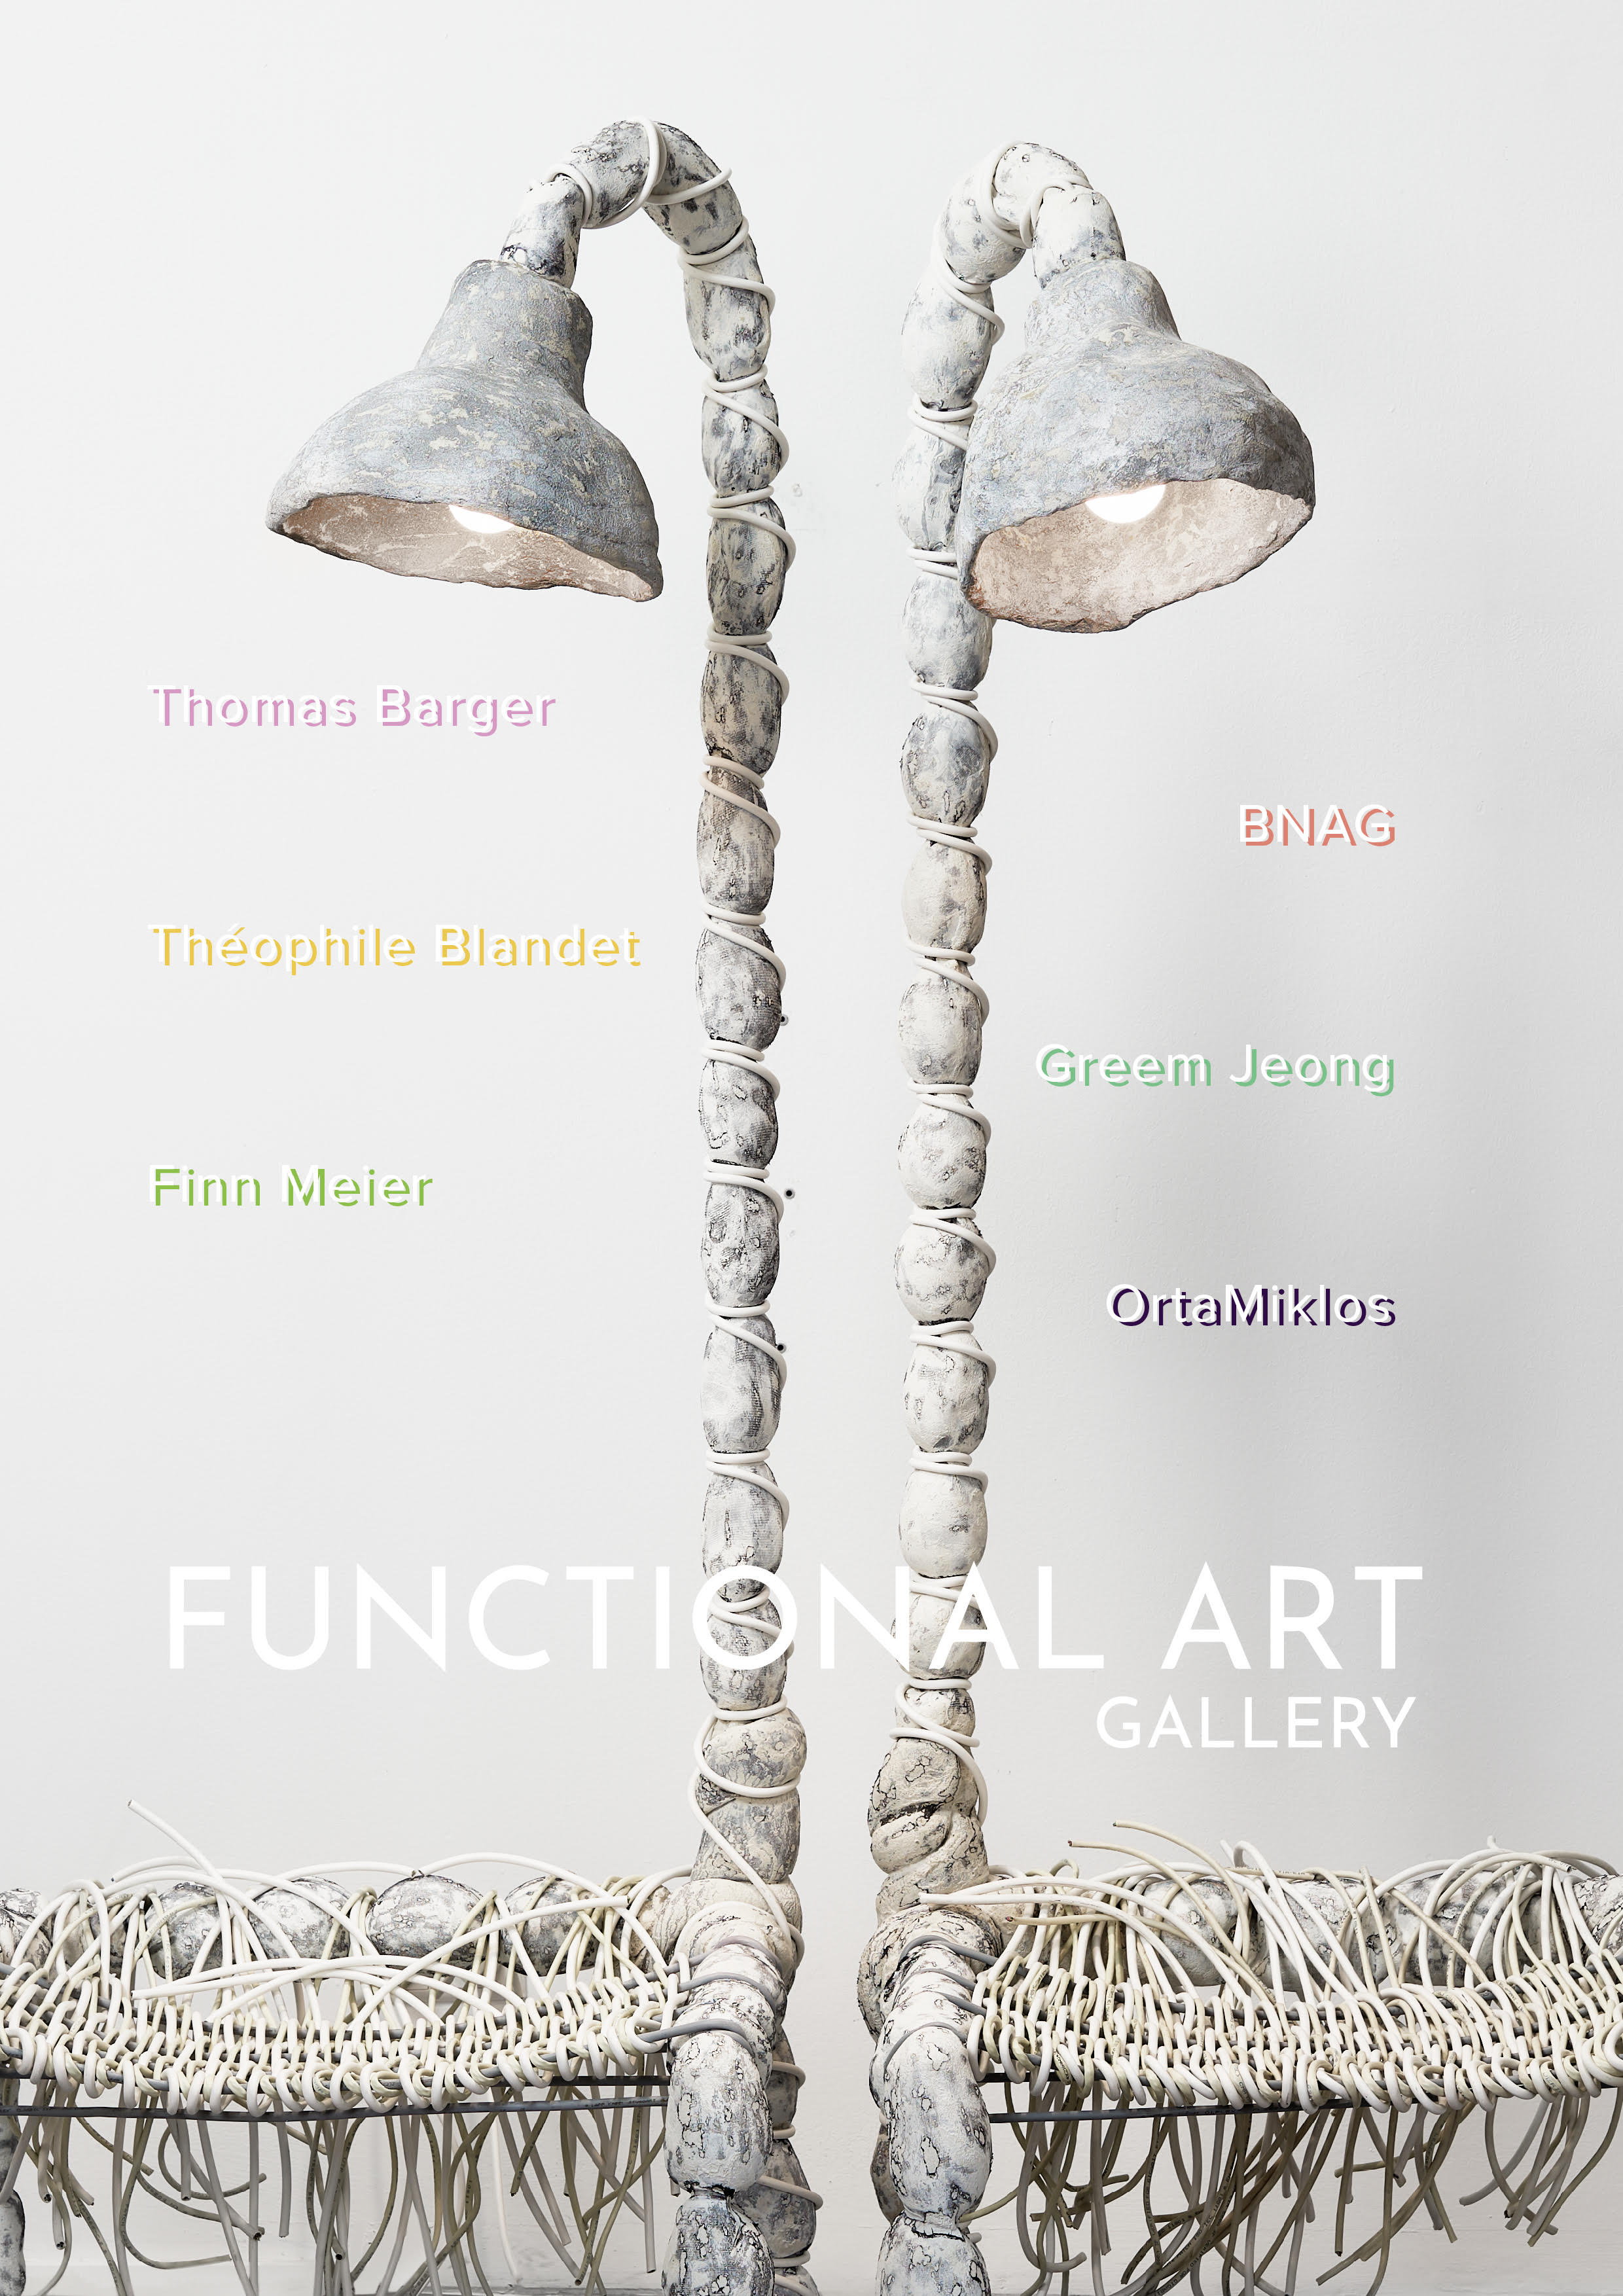 """Functional Art opens September 13th   Join us at Genthiner Straße 36 in Berlin for our inaugural exhibition : """"Functional Art""""  With works by:  Thomas Barger  Théophile Blandet  BNAG  Greem Jeong  Finn Meier  OrtaMiklos"""